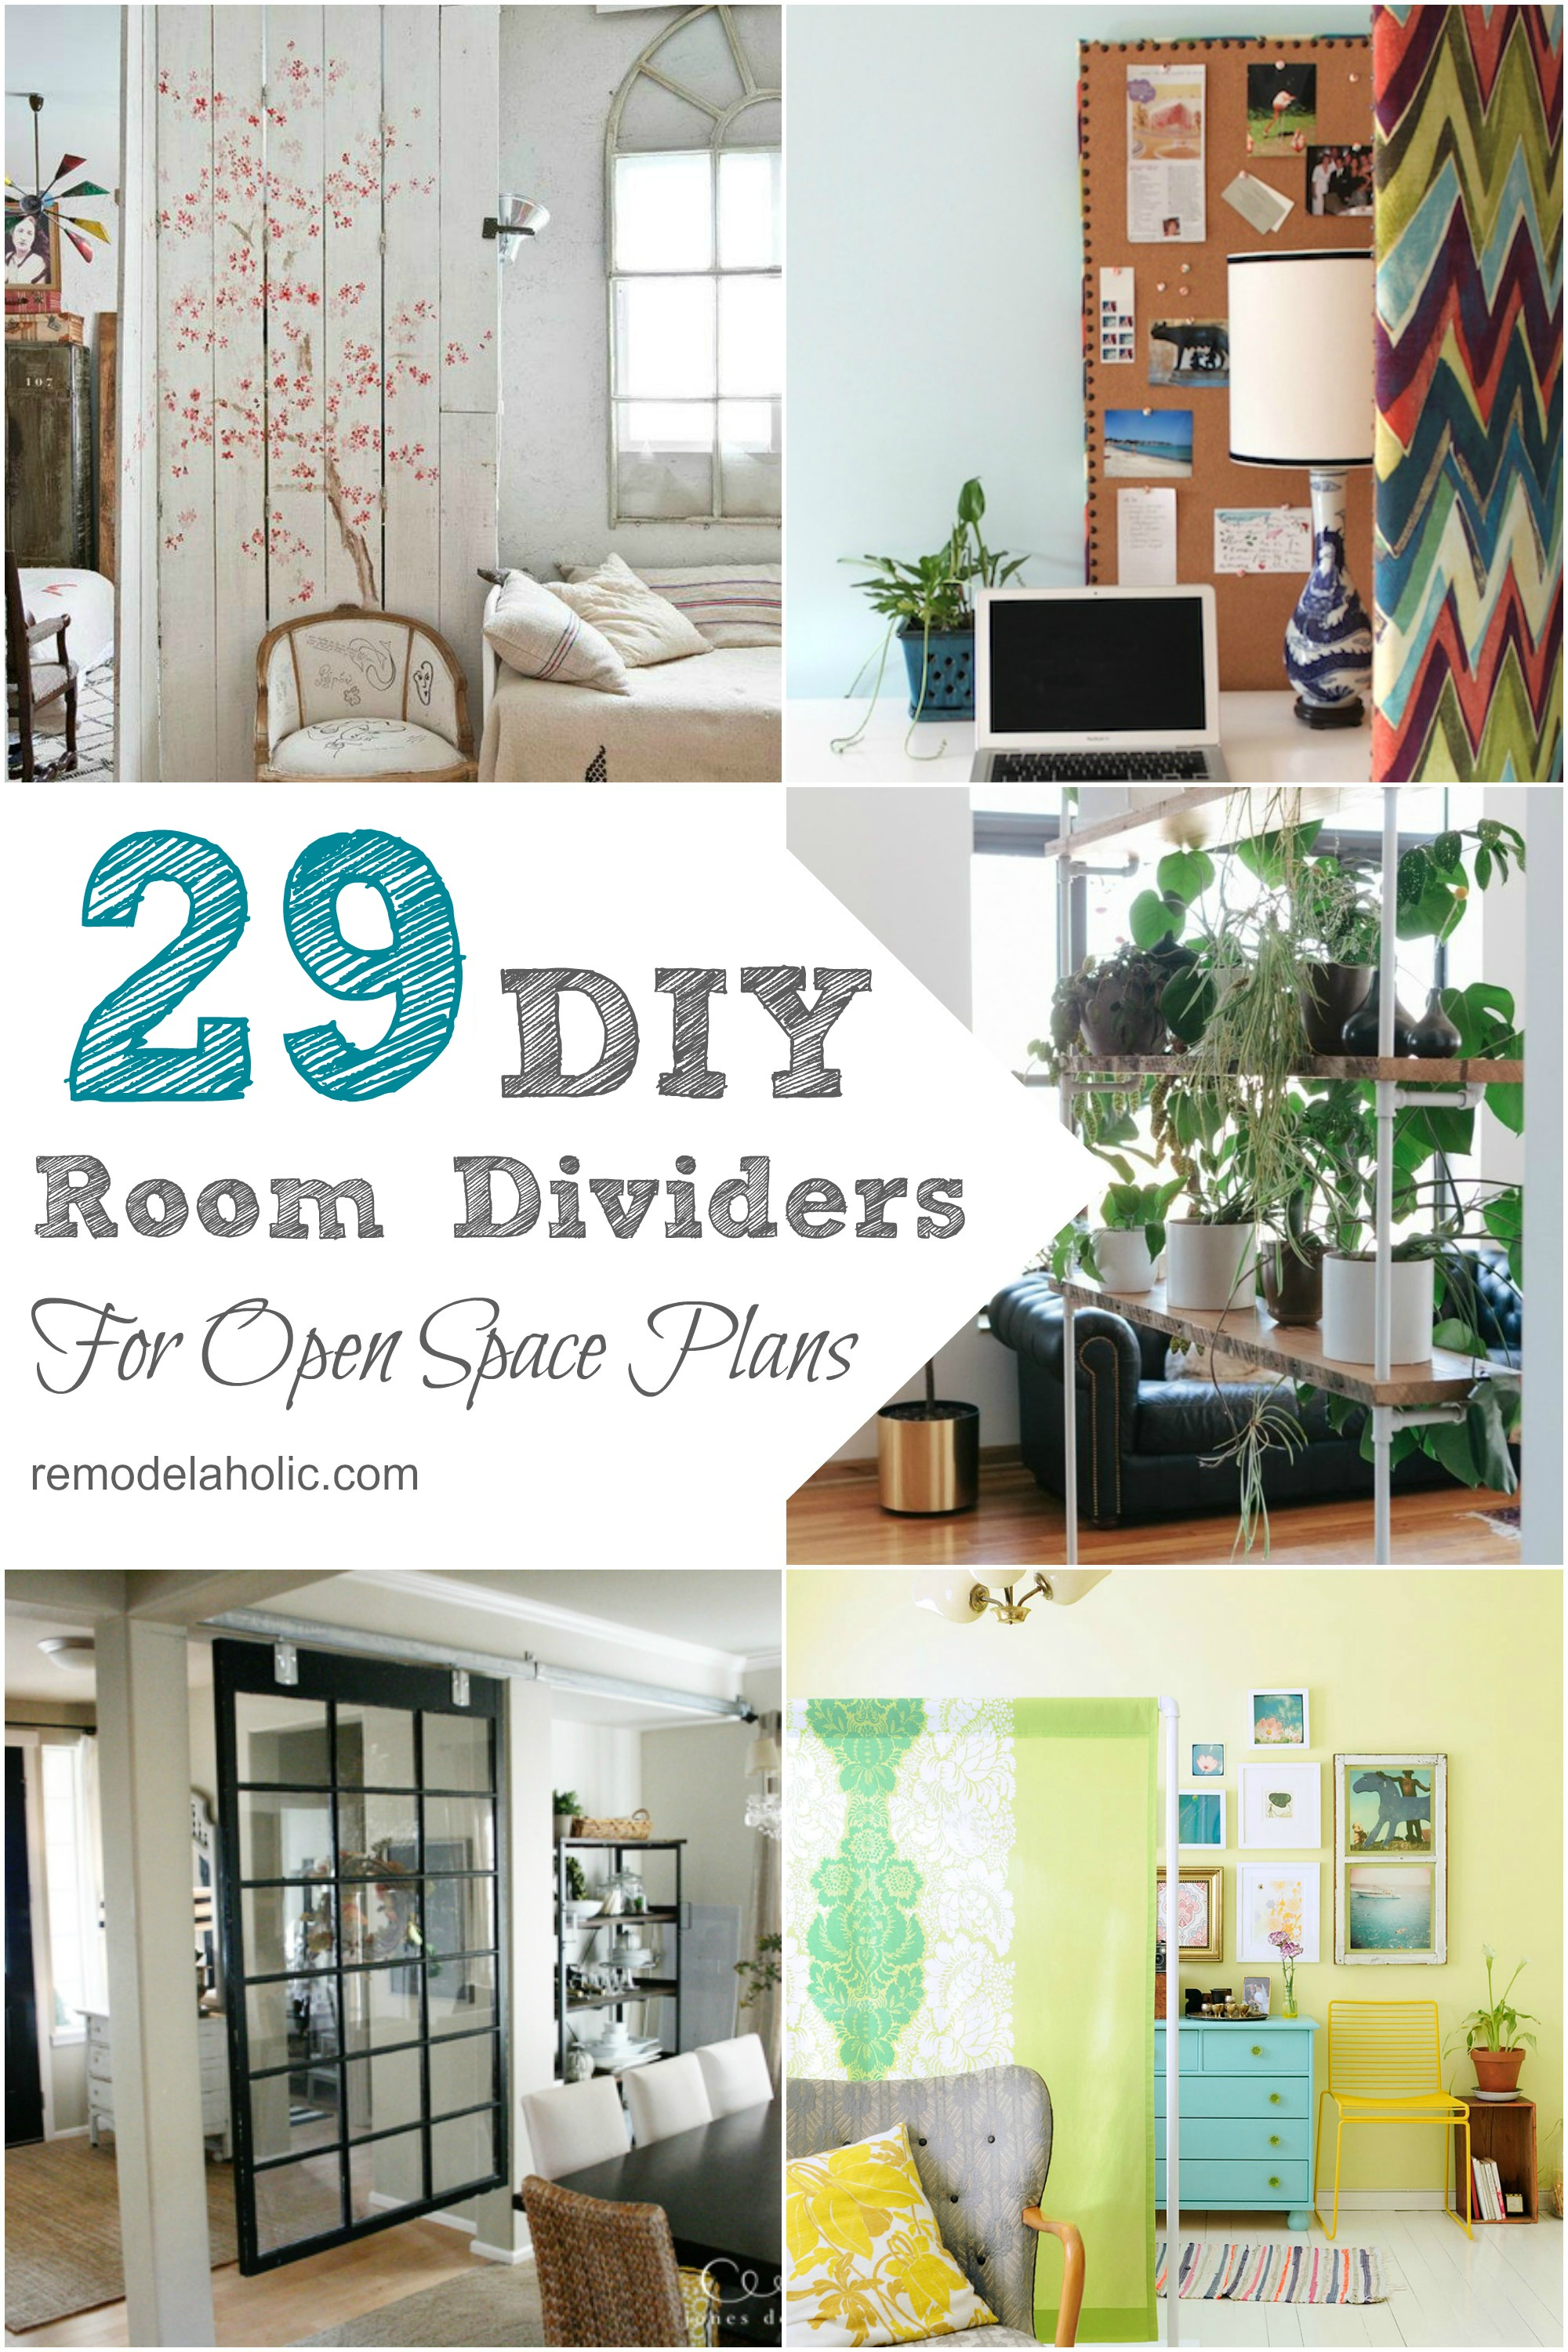 You Can Create New Spaces In Your Home By Building A Room Divider Or Two